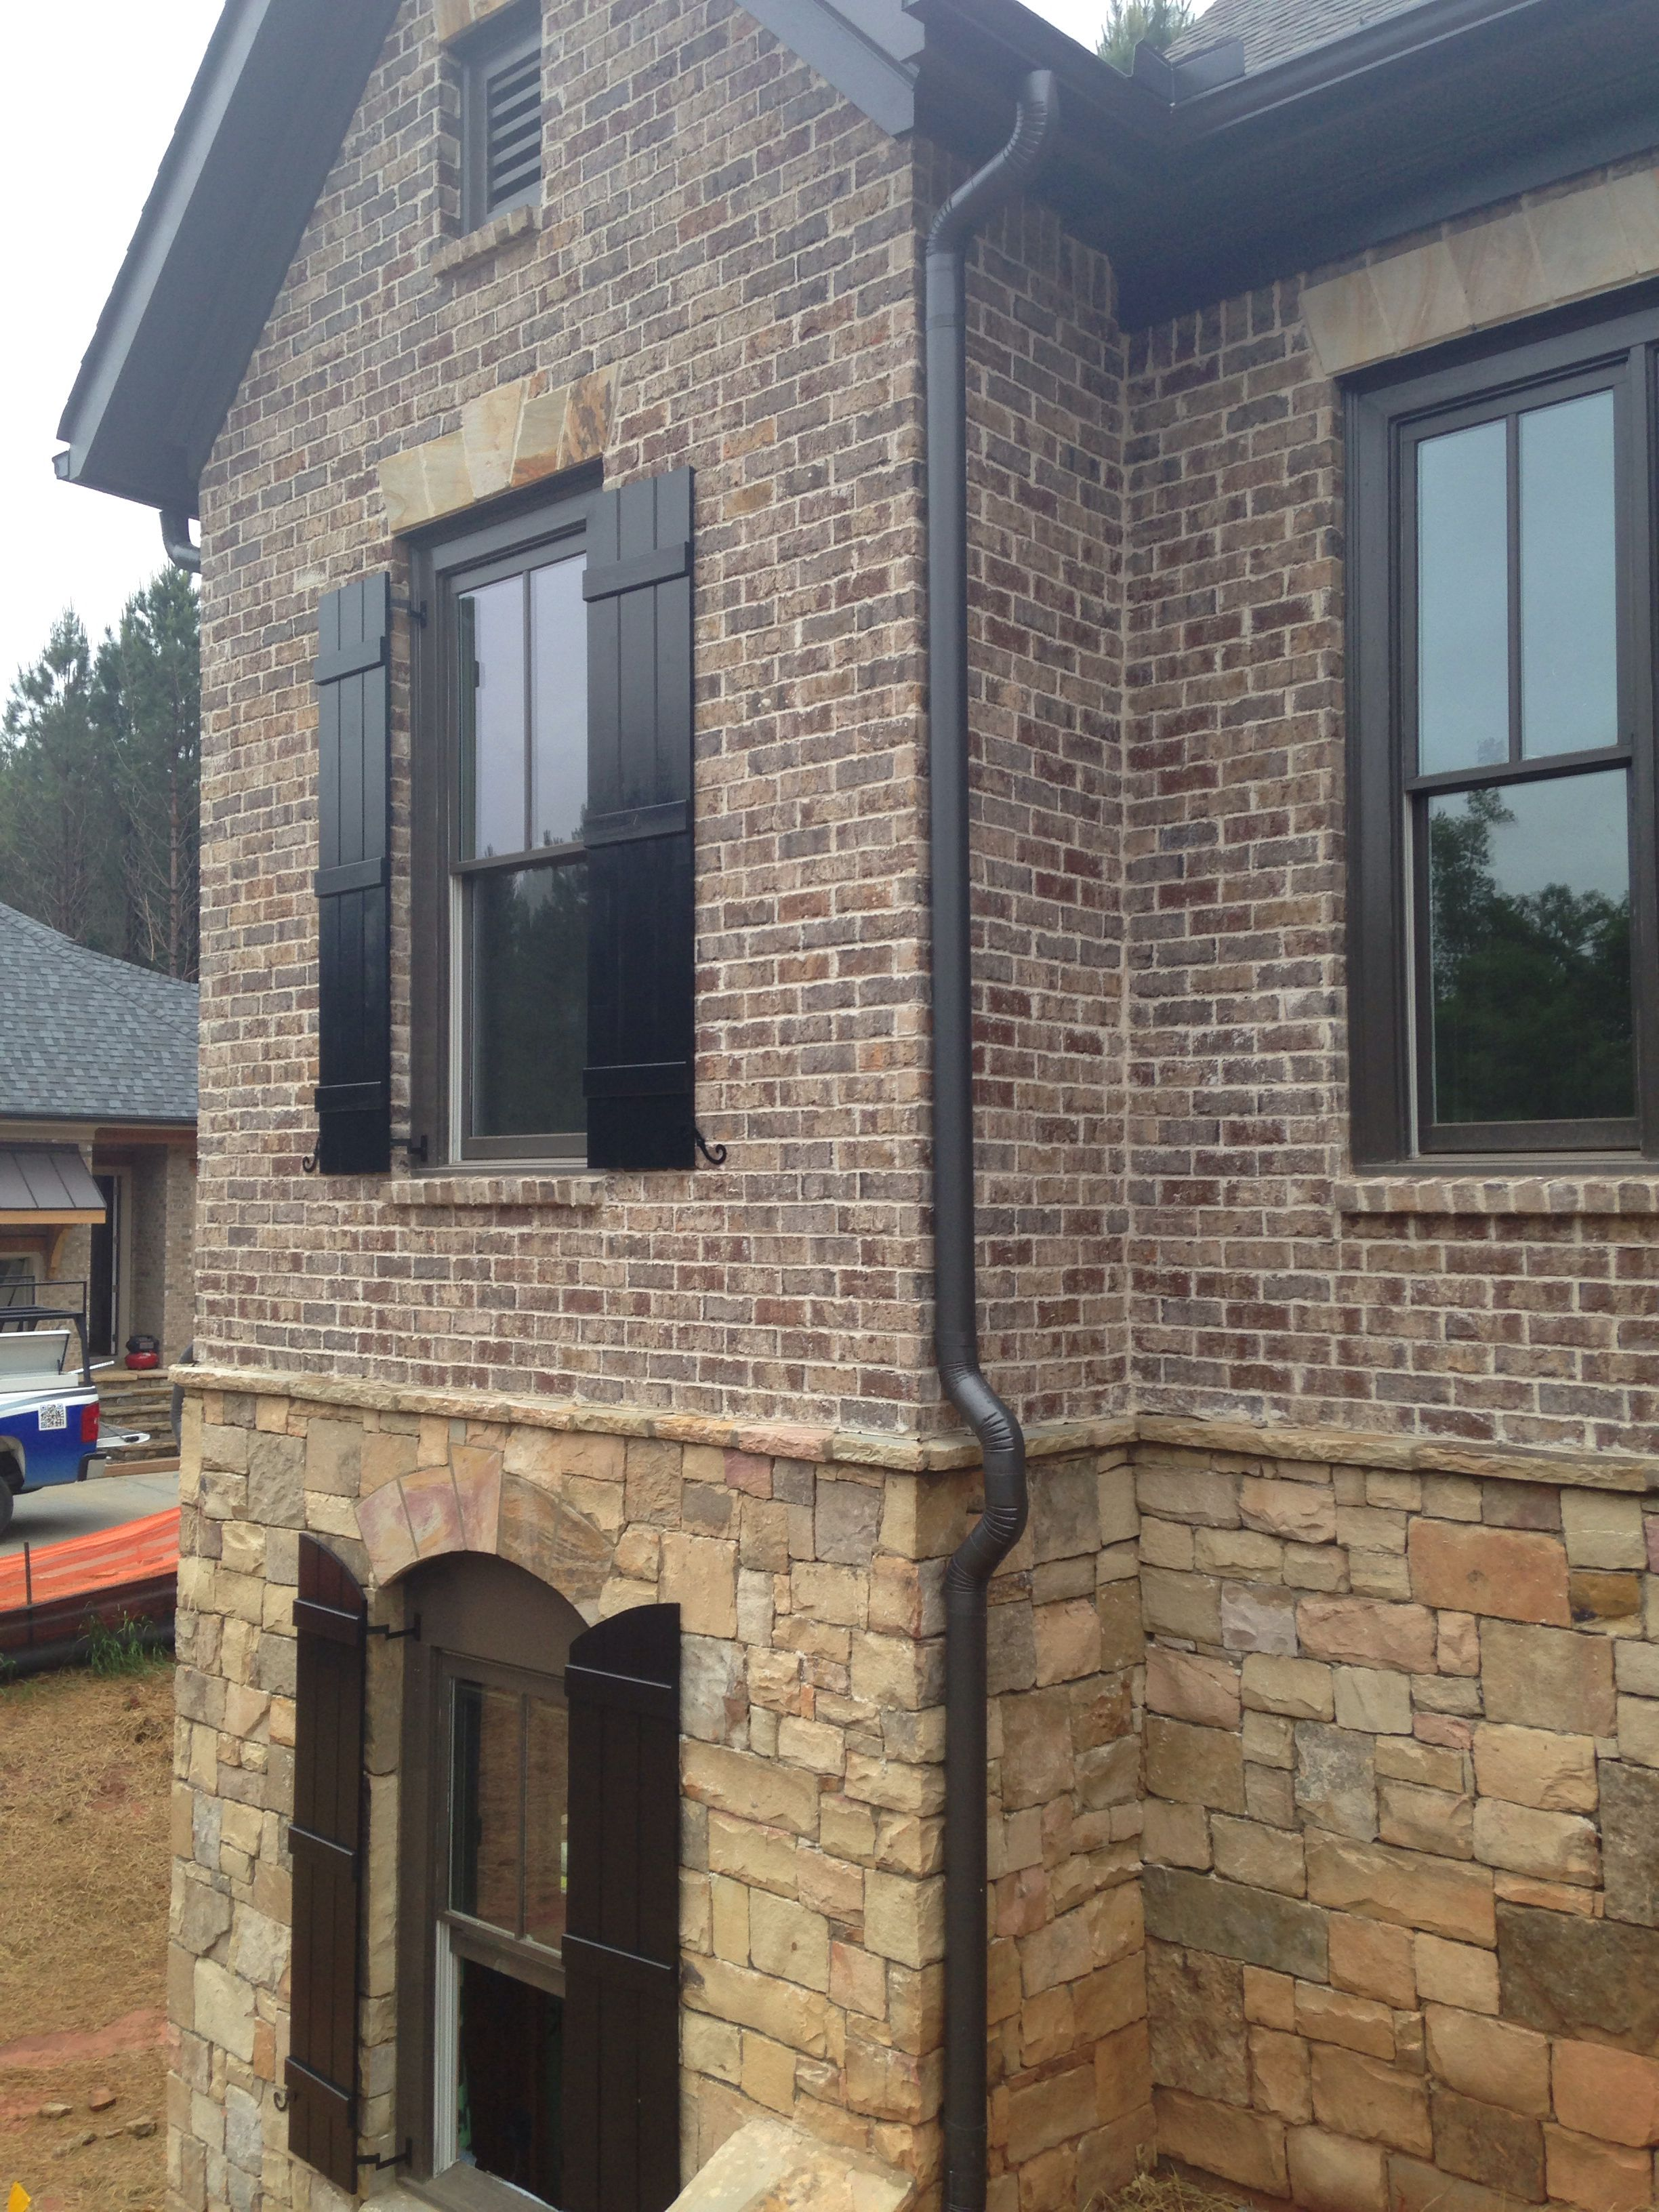 Brick harbor shoals mortar ivory brick close ups in 2019 - Houses with stone and brick on exterior ...